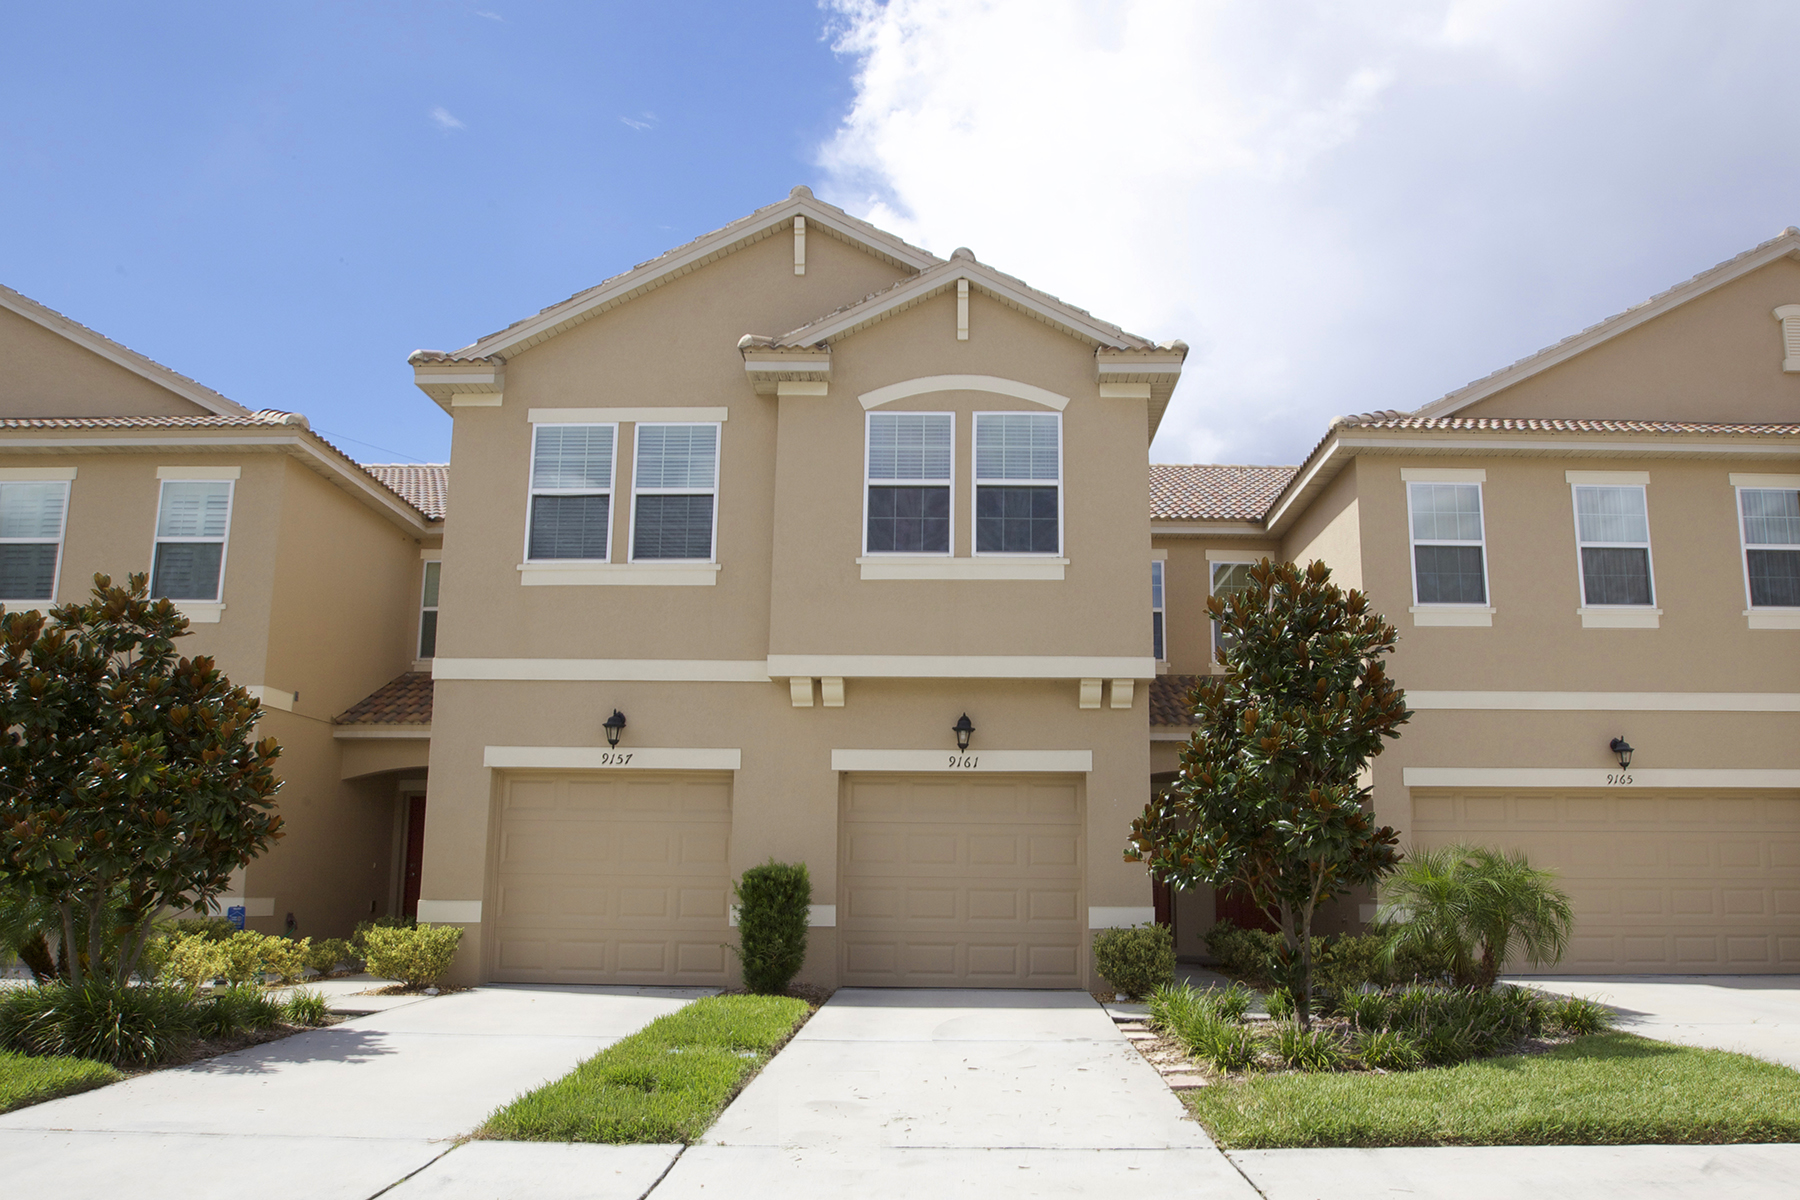 Townhouse for Sale at SOMERSET CHASE 9161 Shepton St Orlando, Florida, 32825 United States